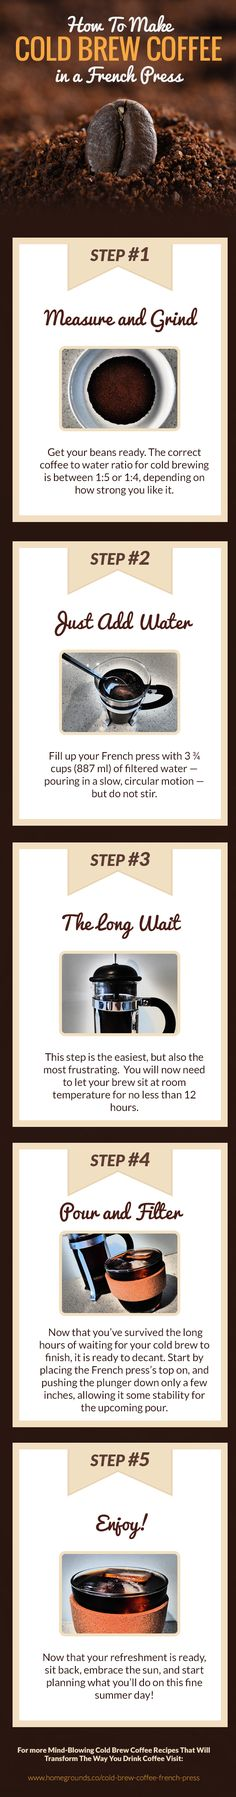 How to Make Cold Brew Coffee in a French Press.